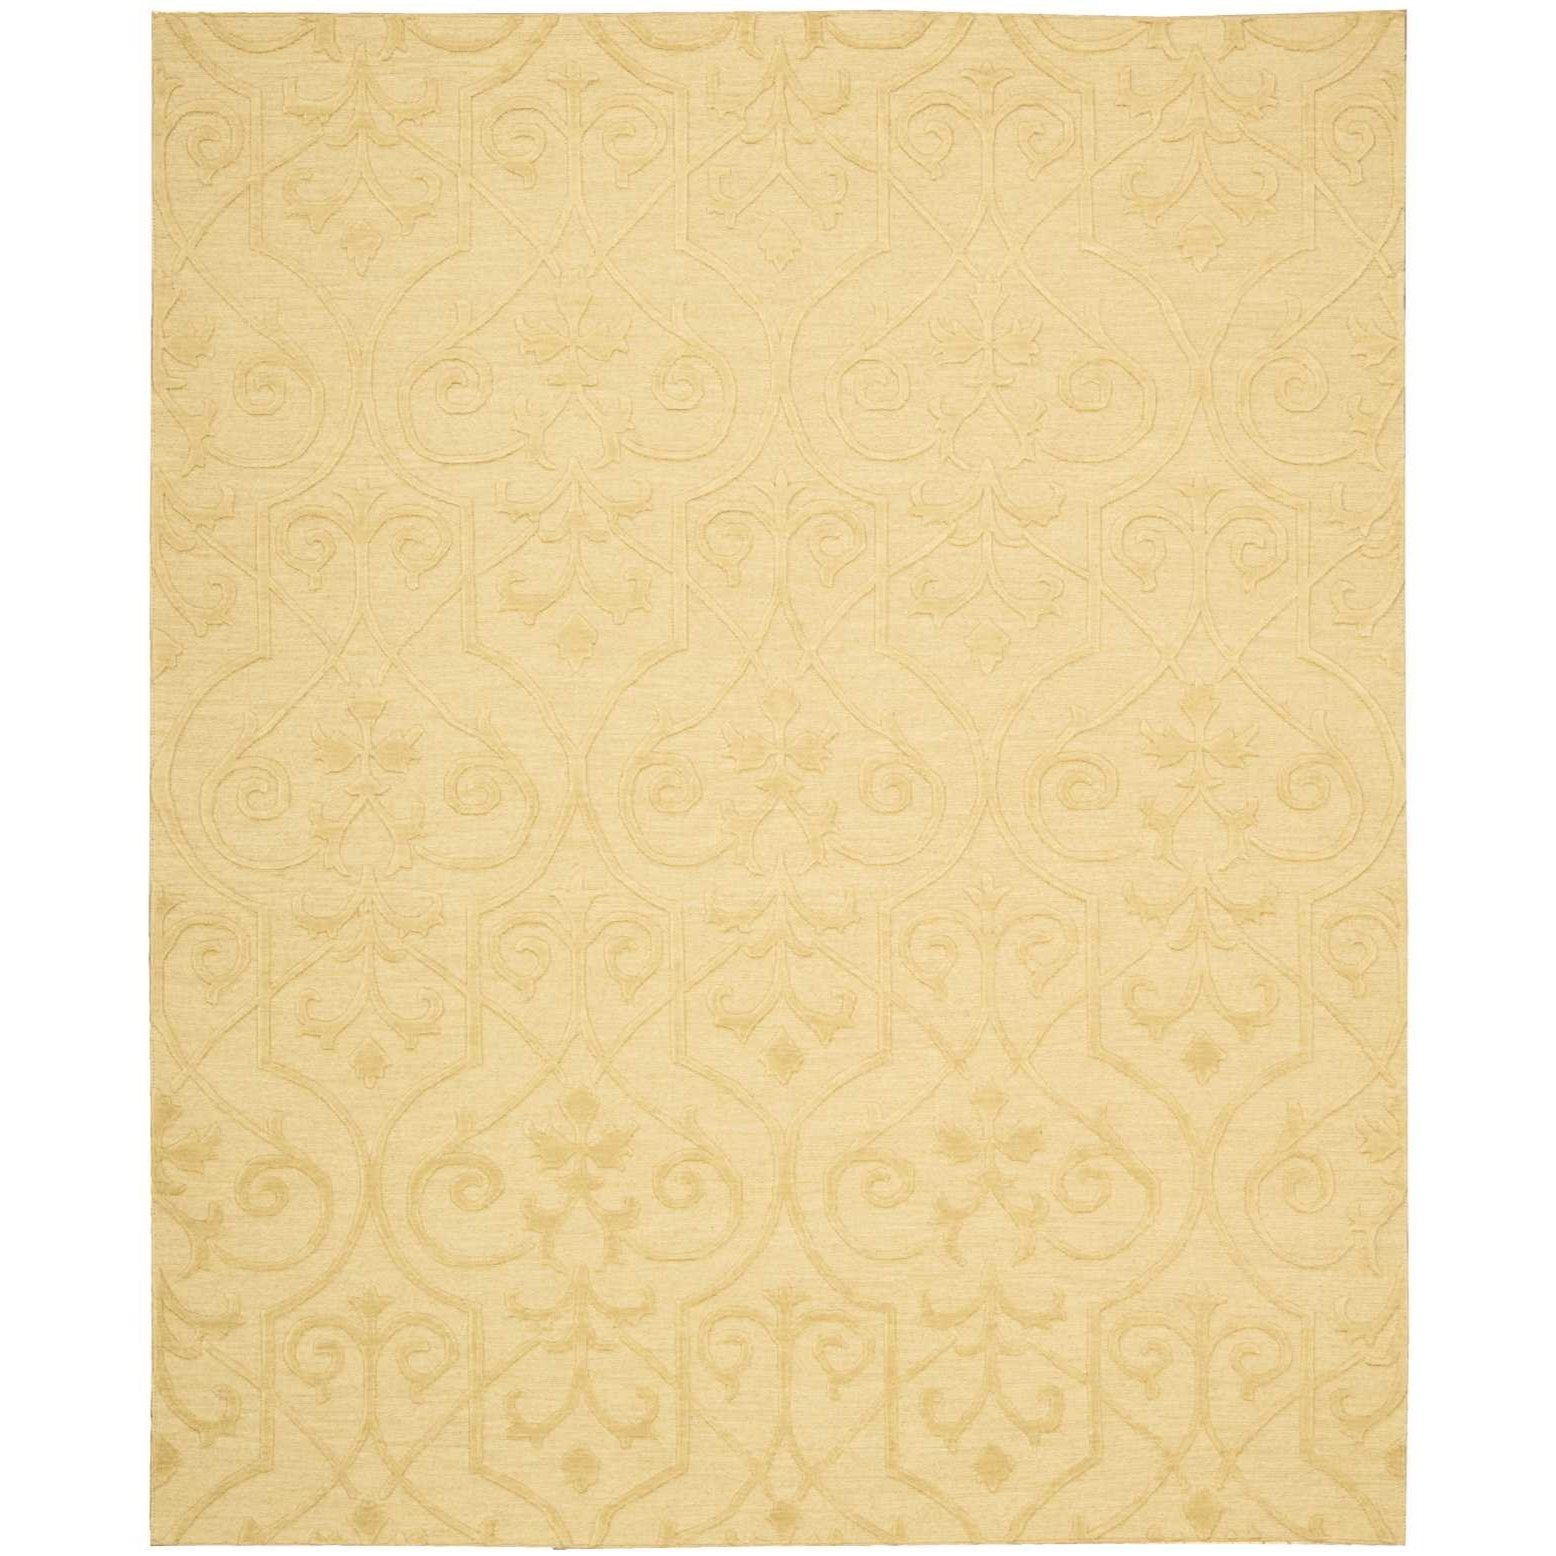 "Ambrose 5'6"" x 7'5"" Straw Rectangle Rug by Nourison at Home Collections Furniture"